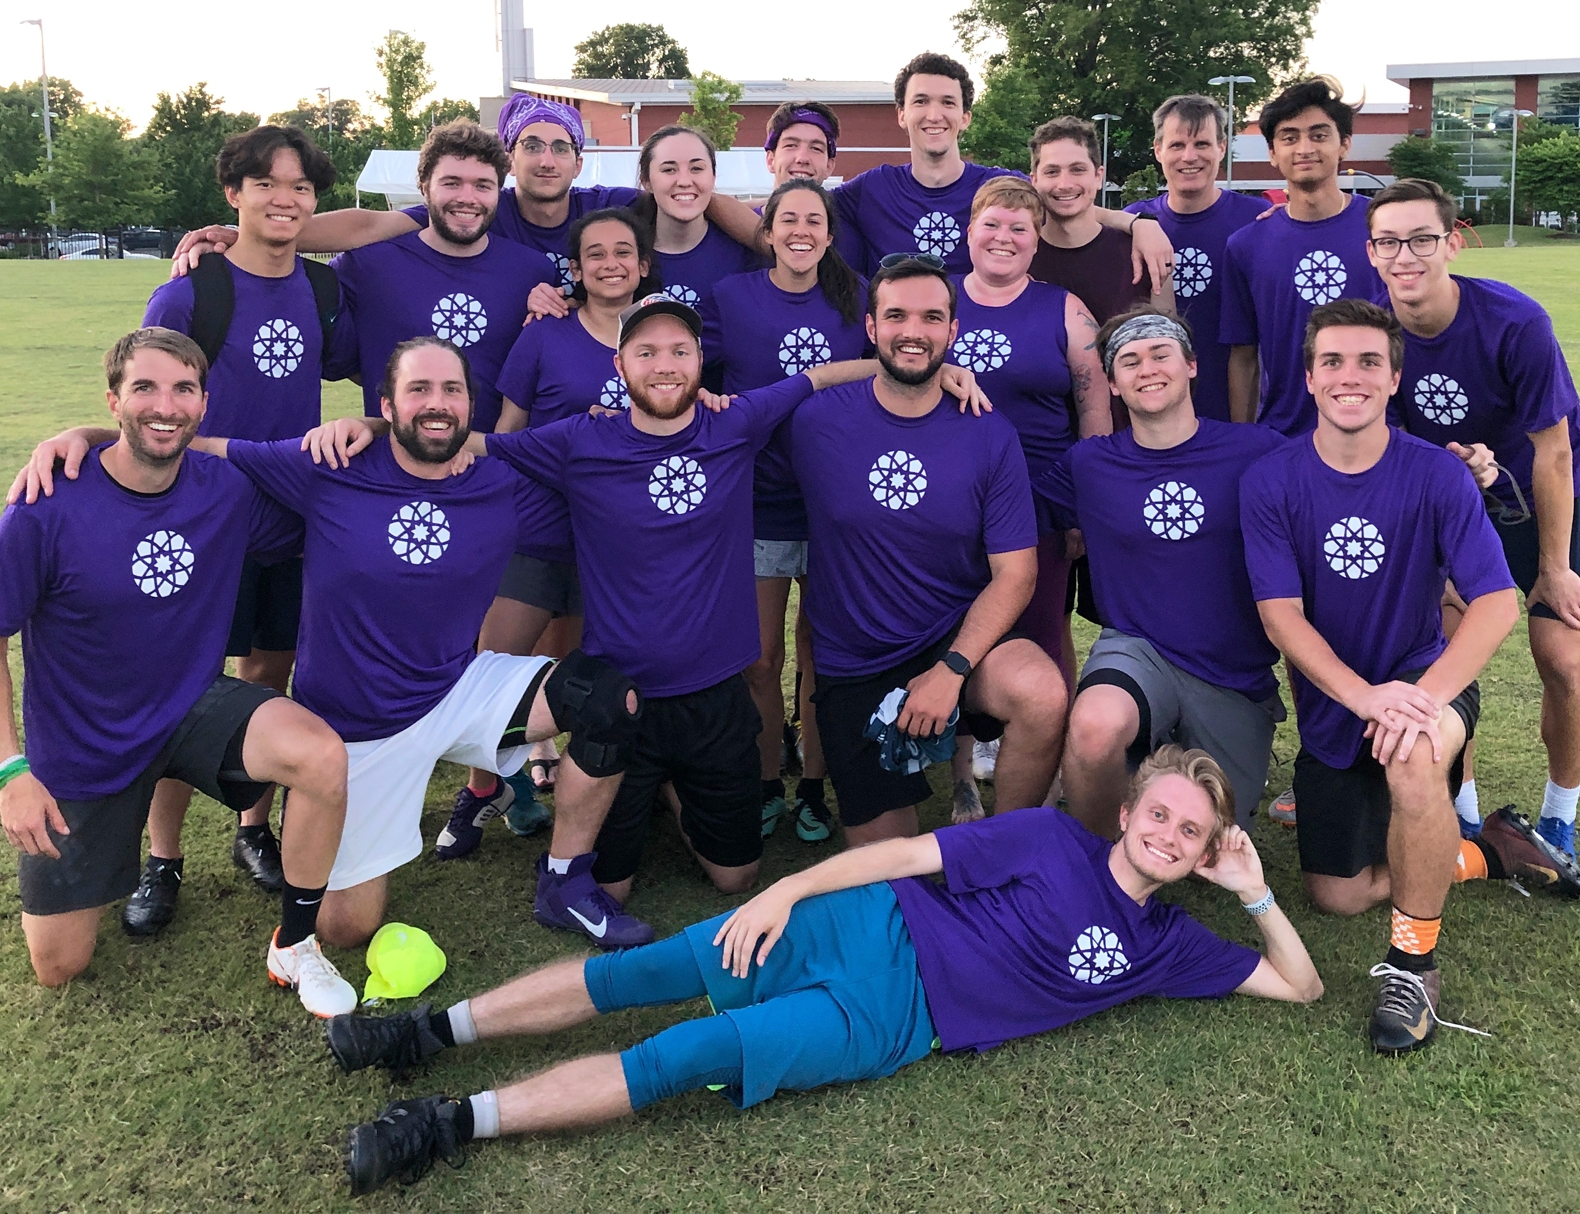 A large group of ultimate frisbee players wearing purple jerseys showing the MUDA icon